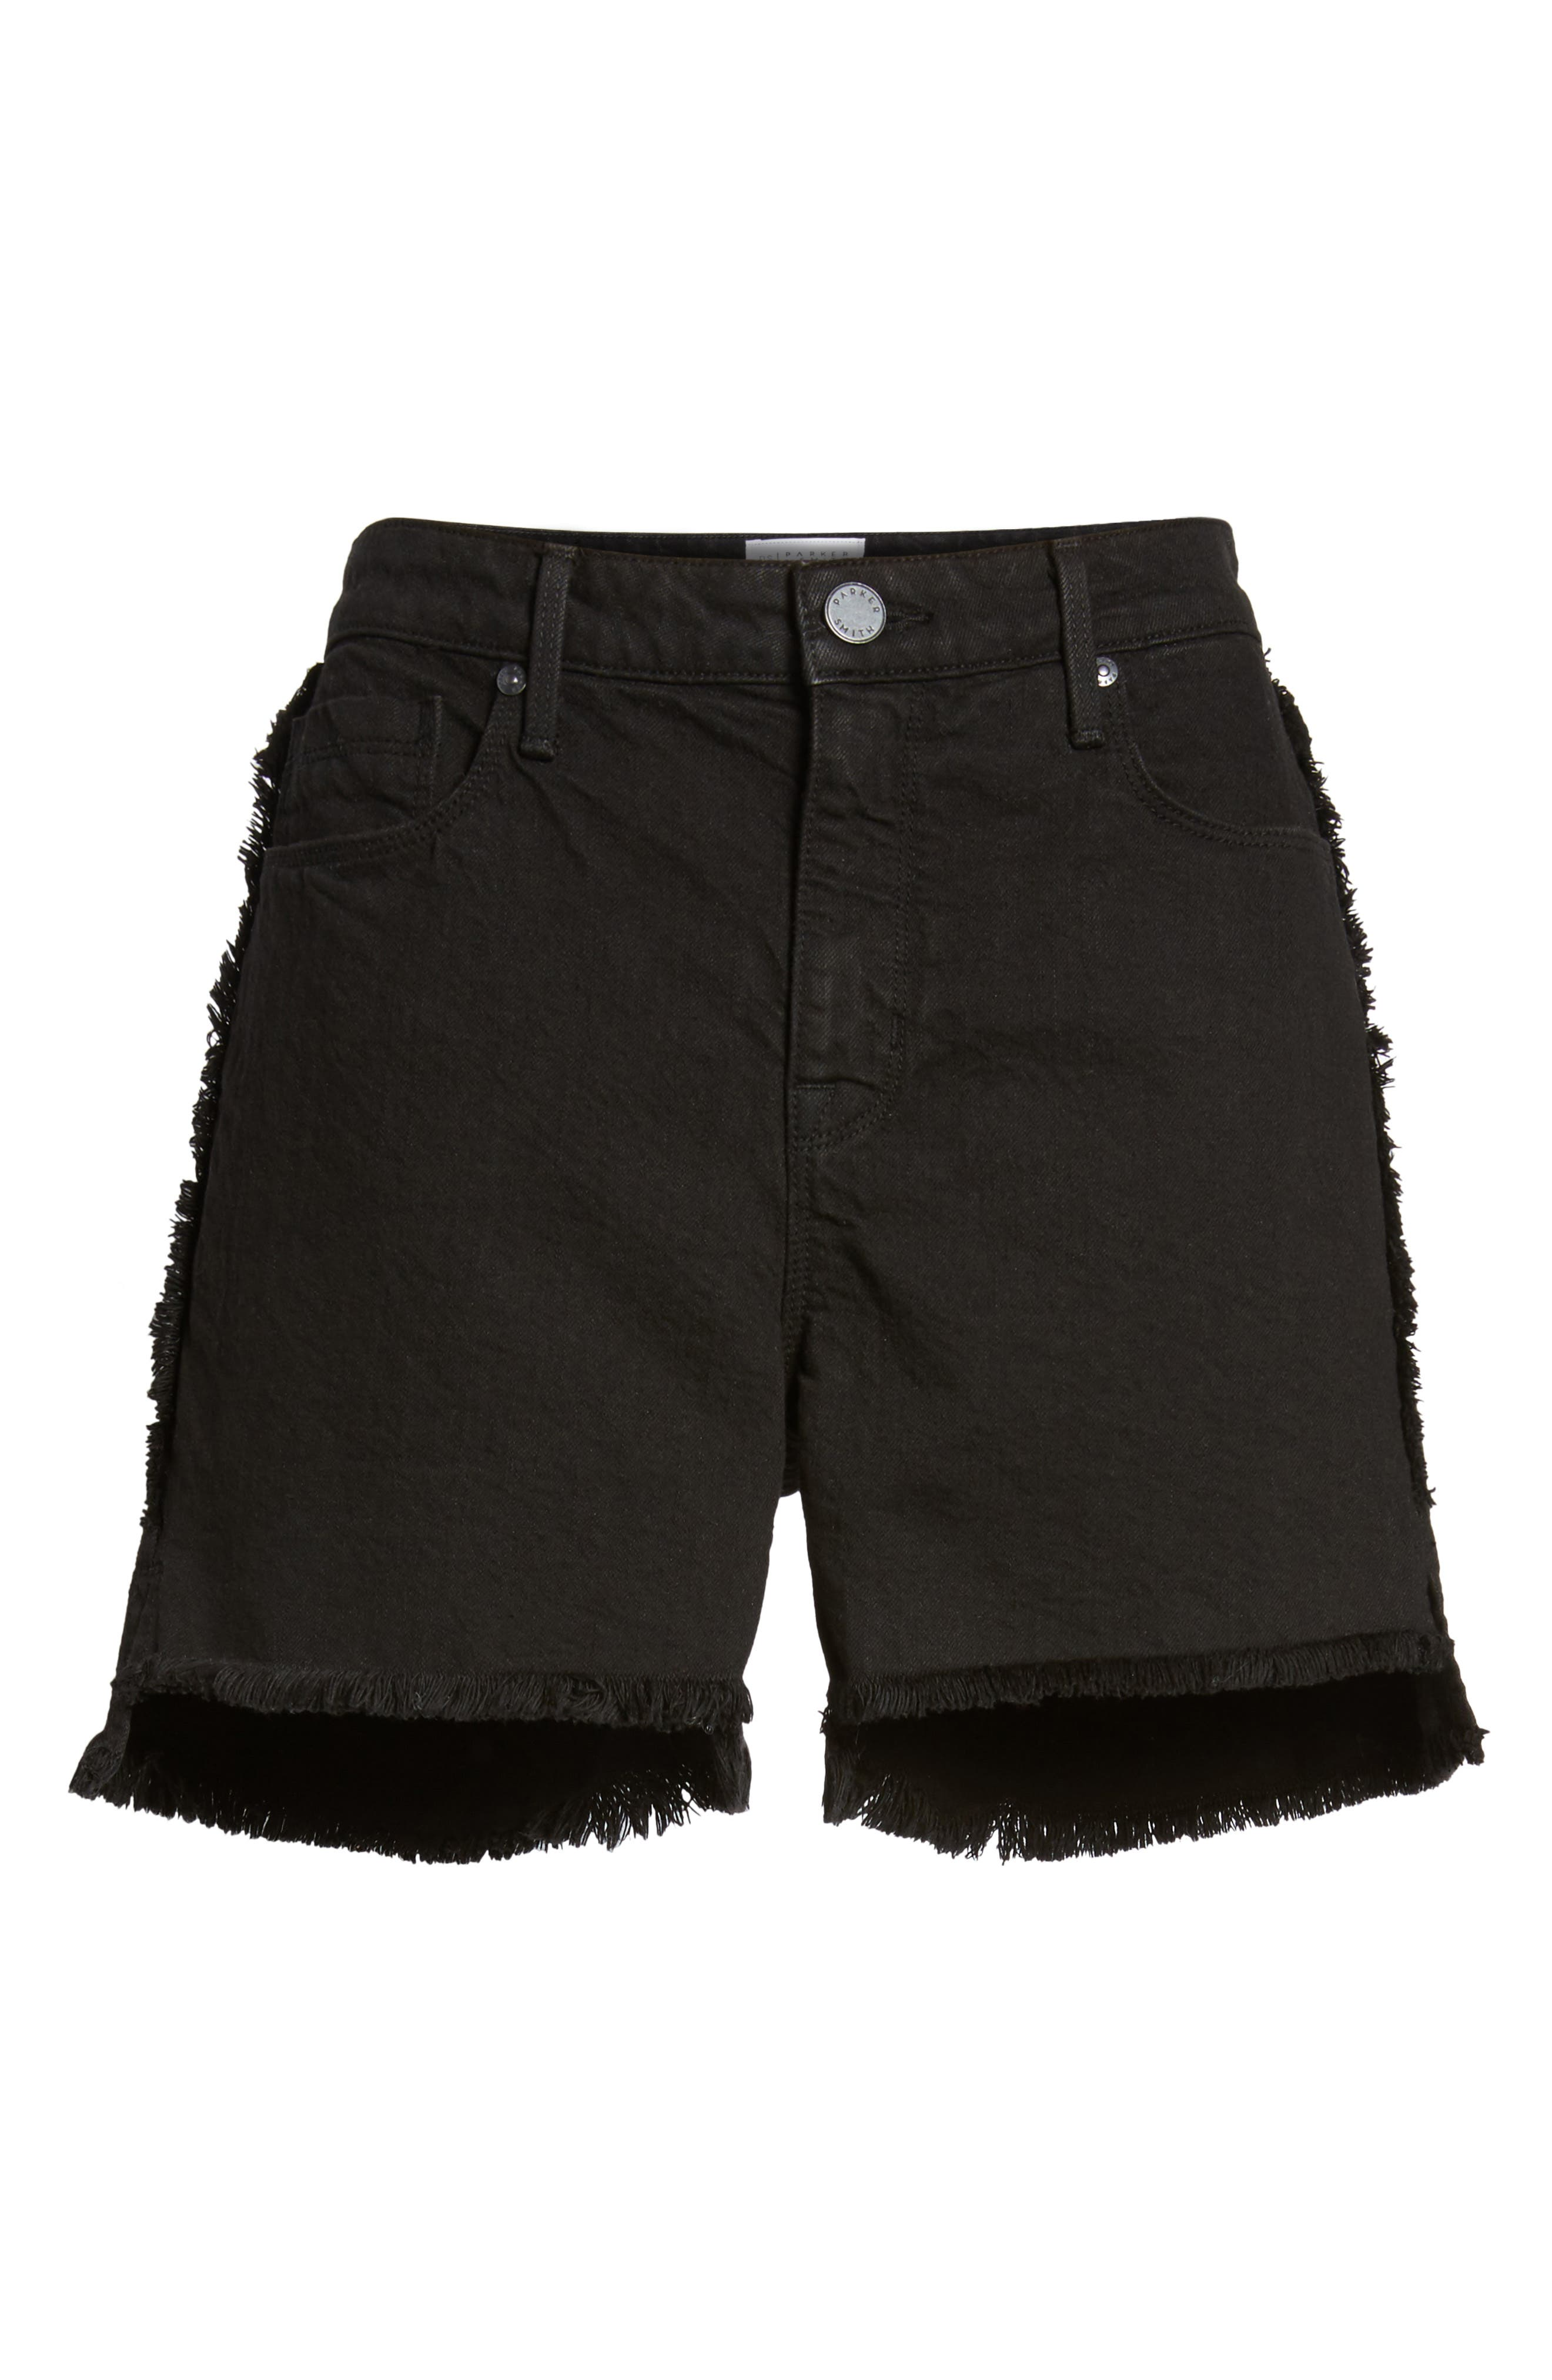 PARKER SMITH,                             Step Hem Frayed Denim Shorts,                             Alternate thumbnail 7, color,                             001